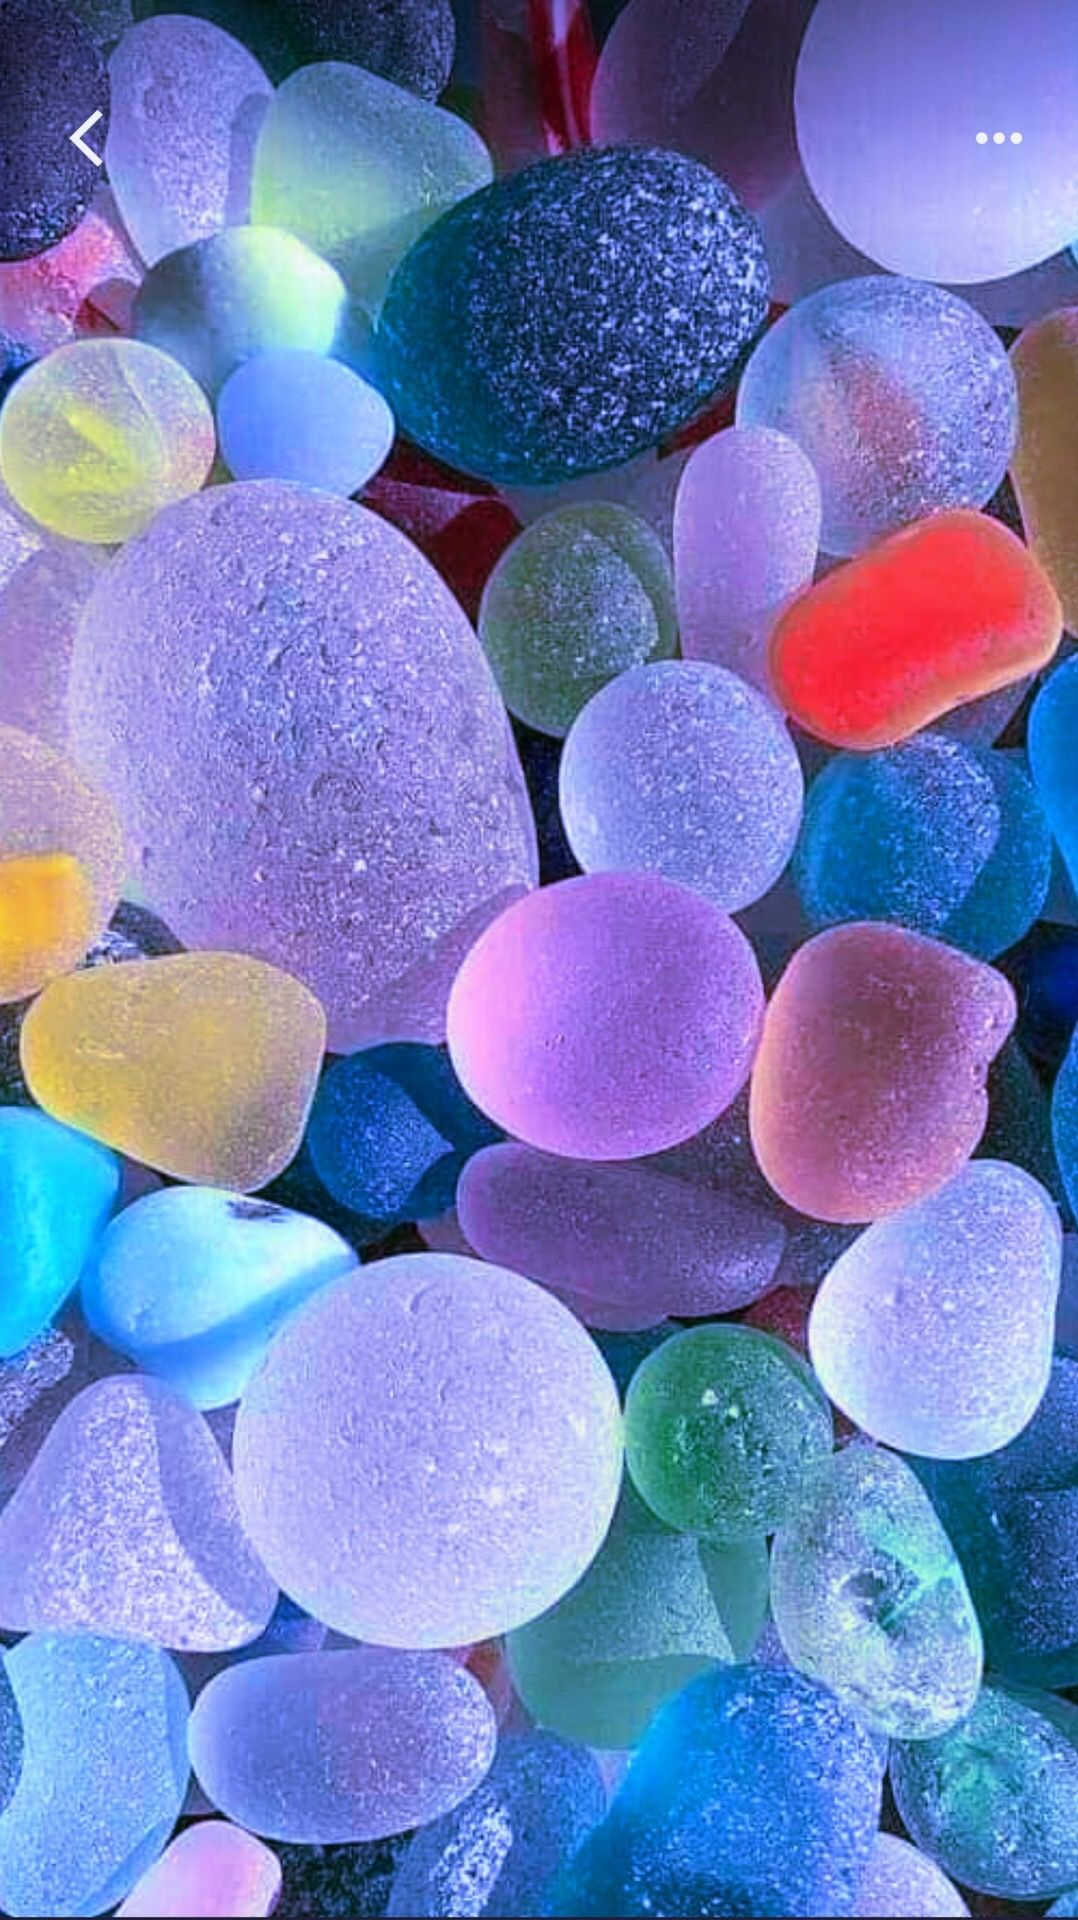 beach glass pebbles Colourful wallpaper iphone Stone wallpaper